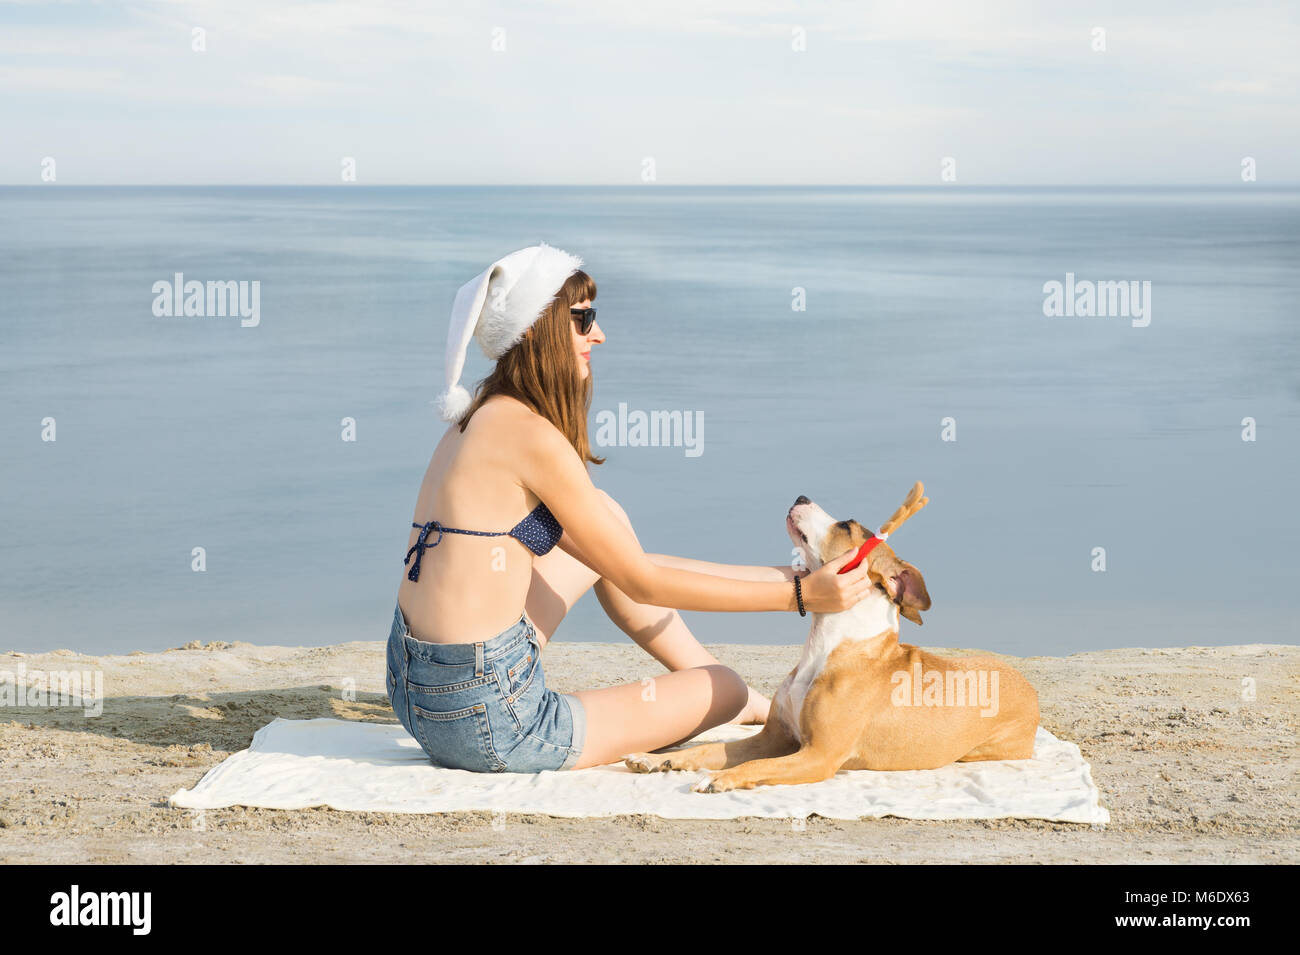 Young female person in bikini and santa claus hat sits on the beach and puts on reindeer horns on her staffordshire - Stock Image